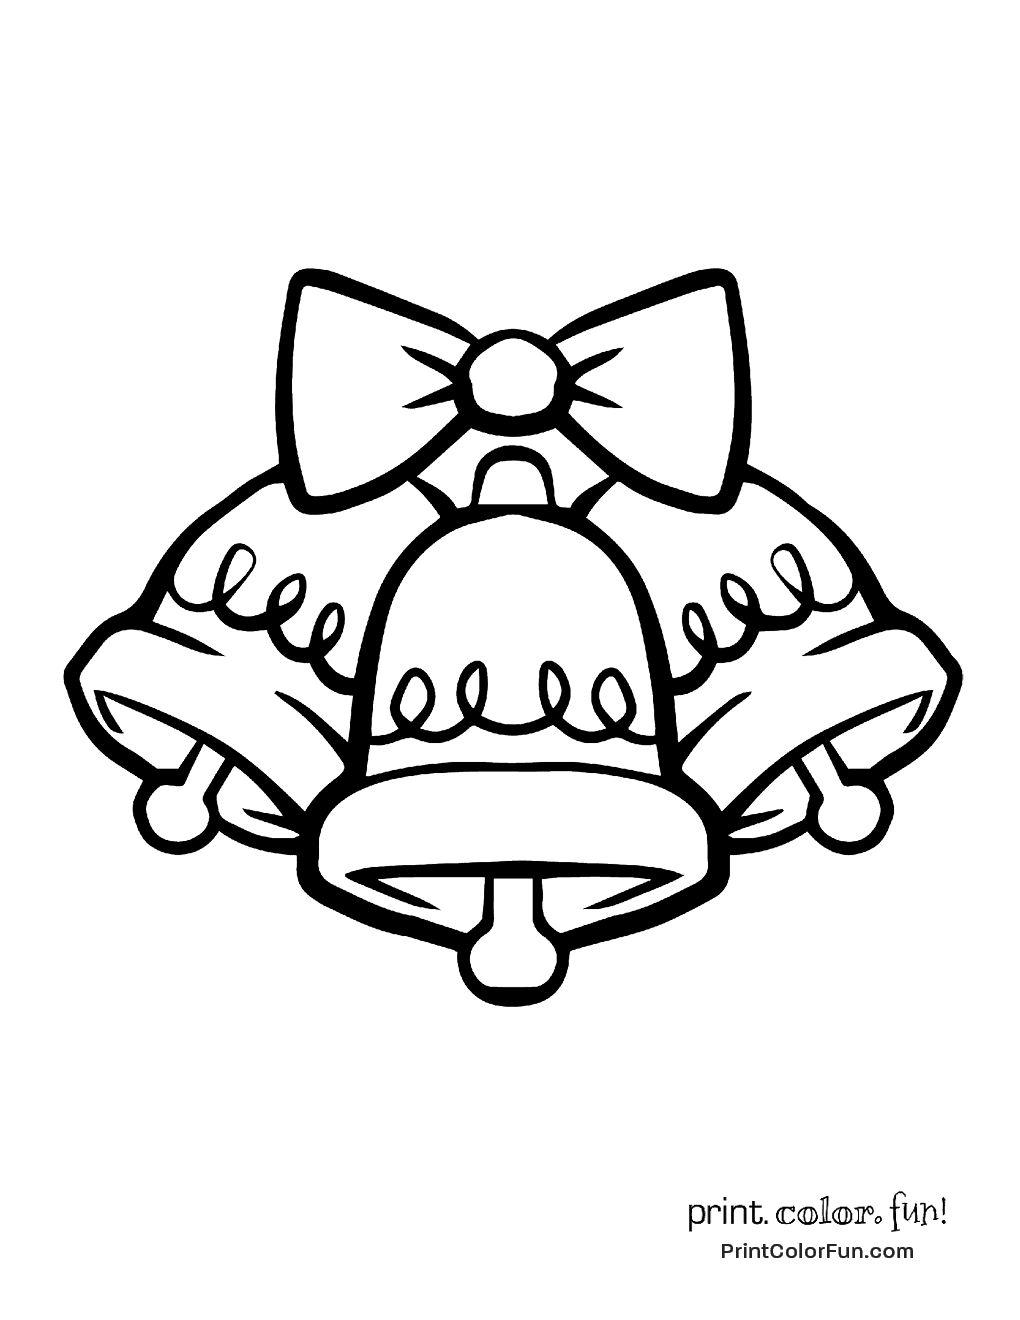 Three Christmas Bells Coloring Page